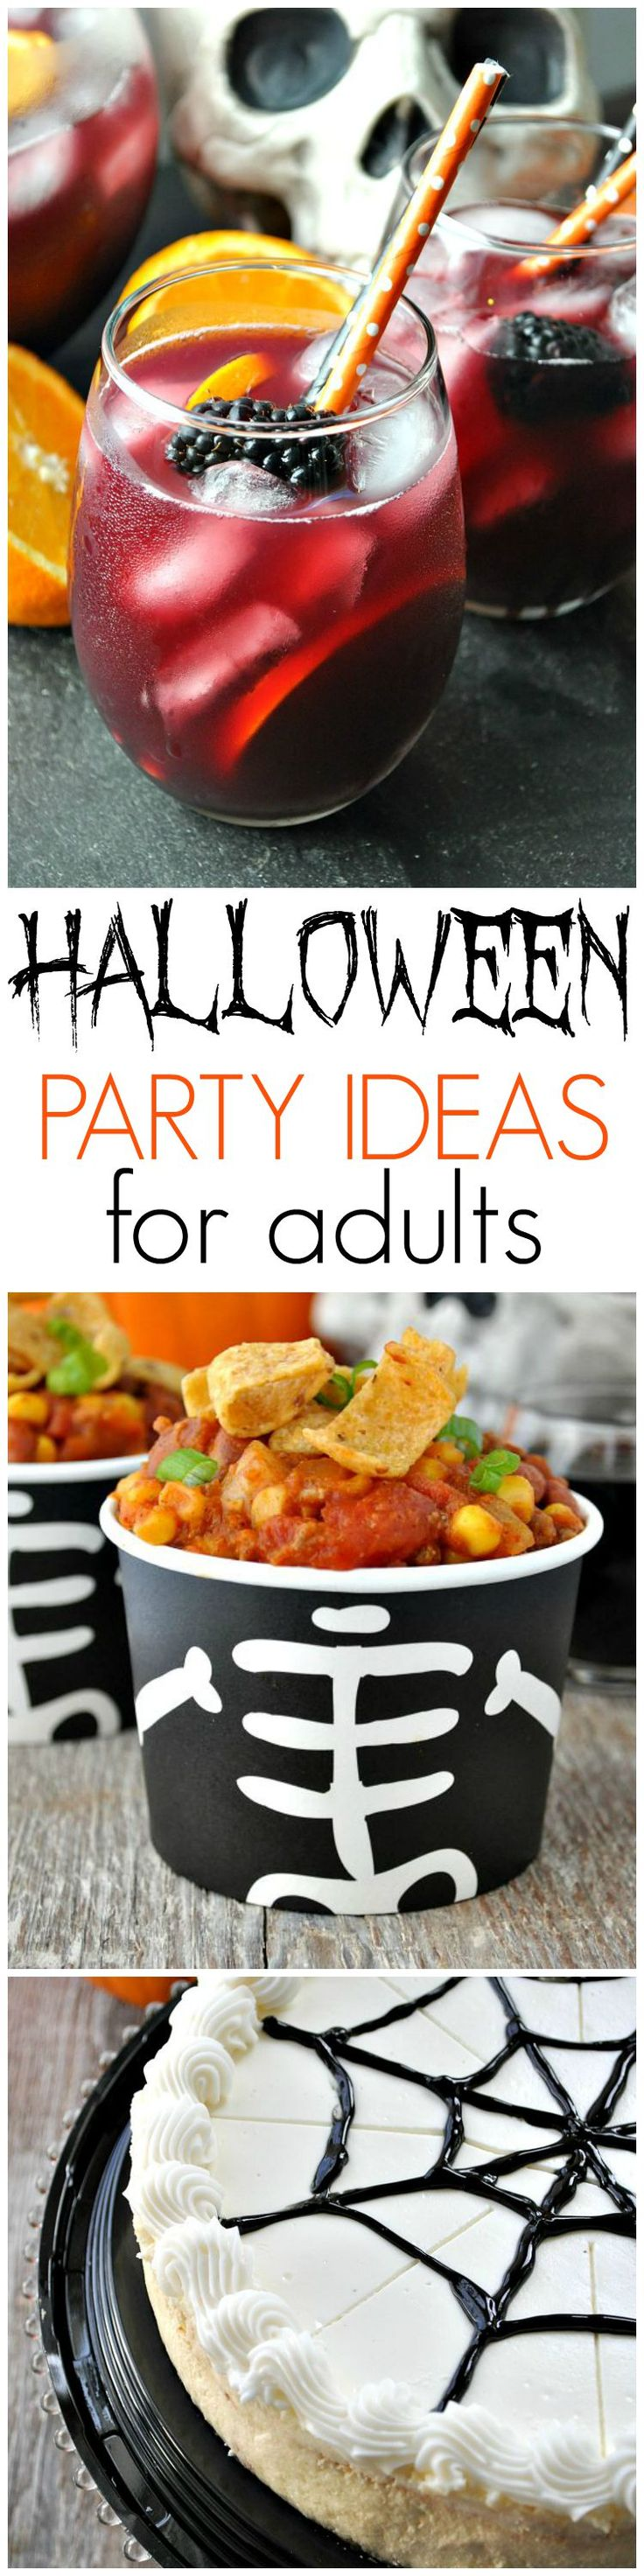 Slow Cooker Pumpkin Chili + Halloween Party Ideas for